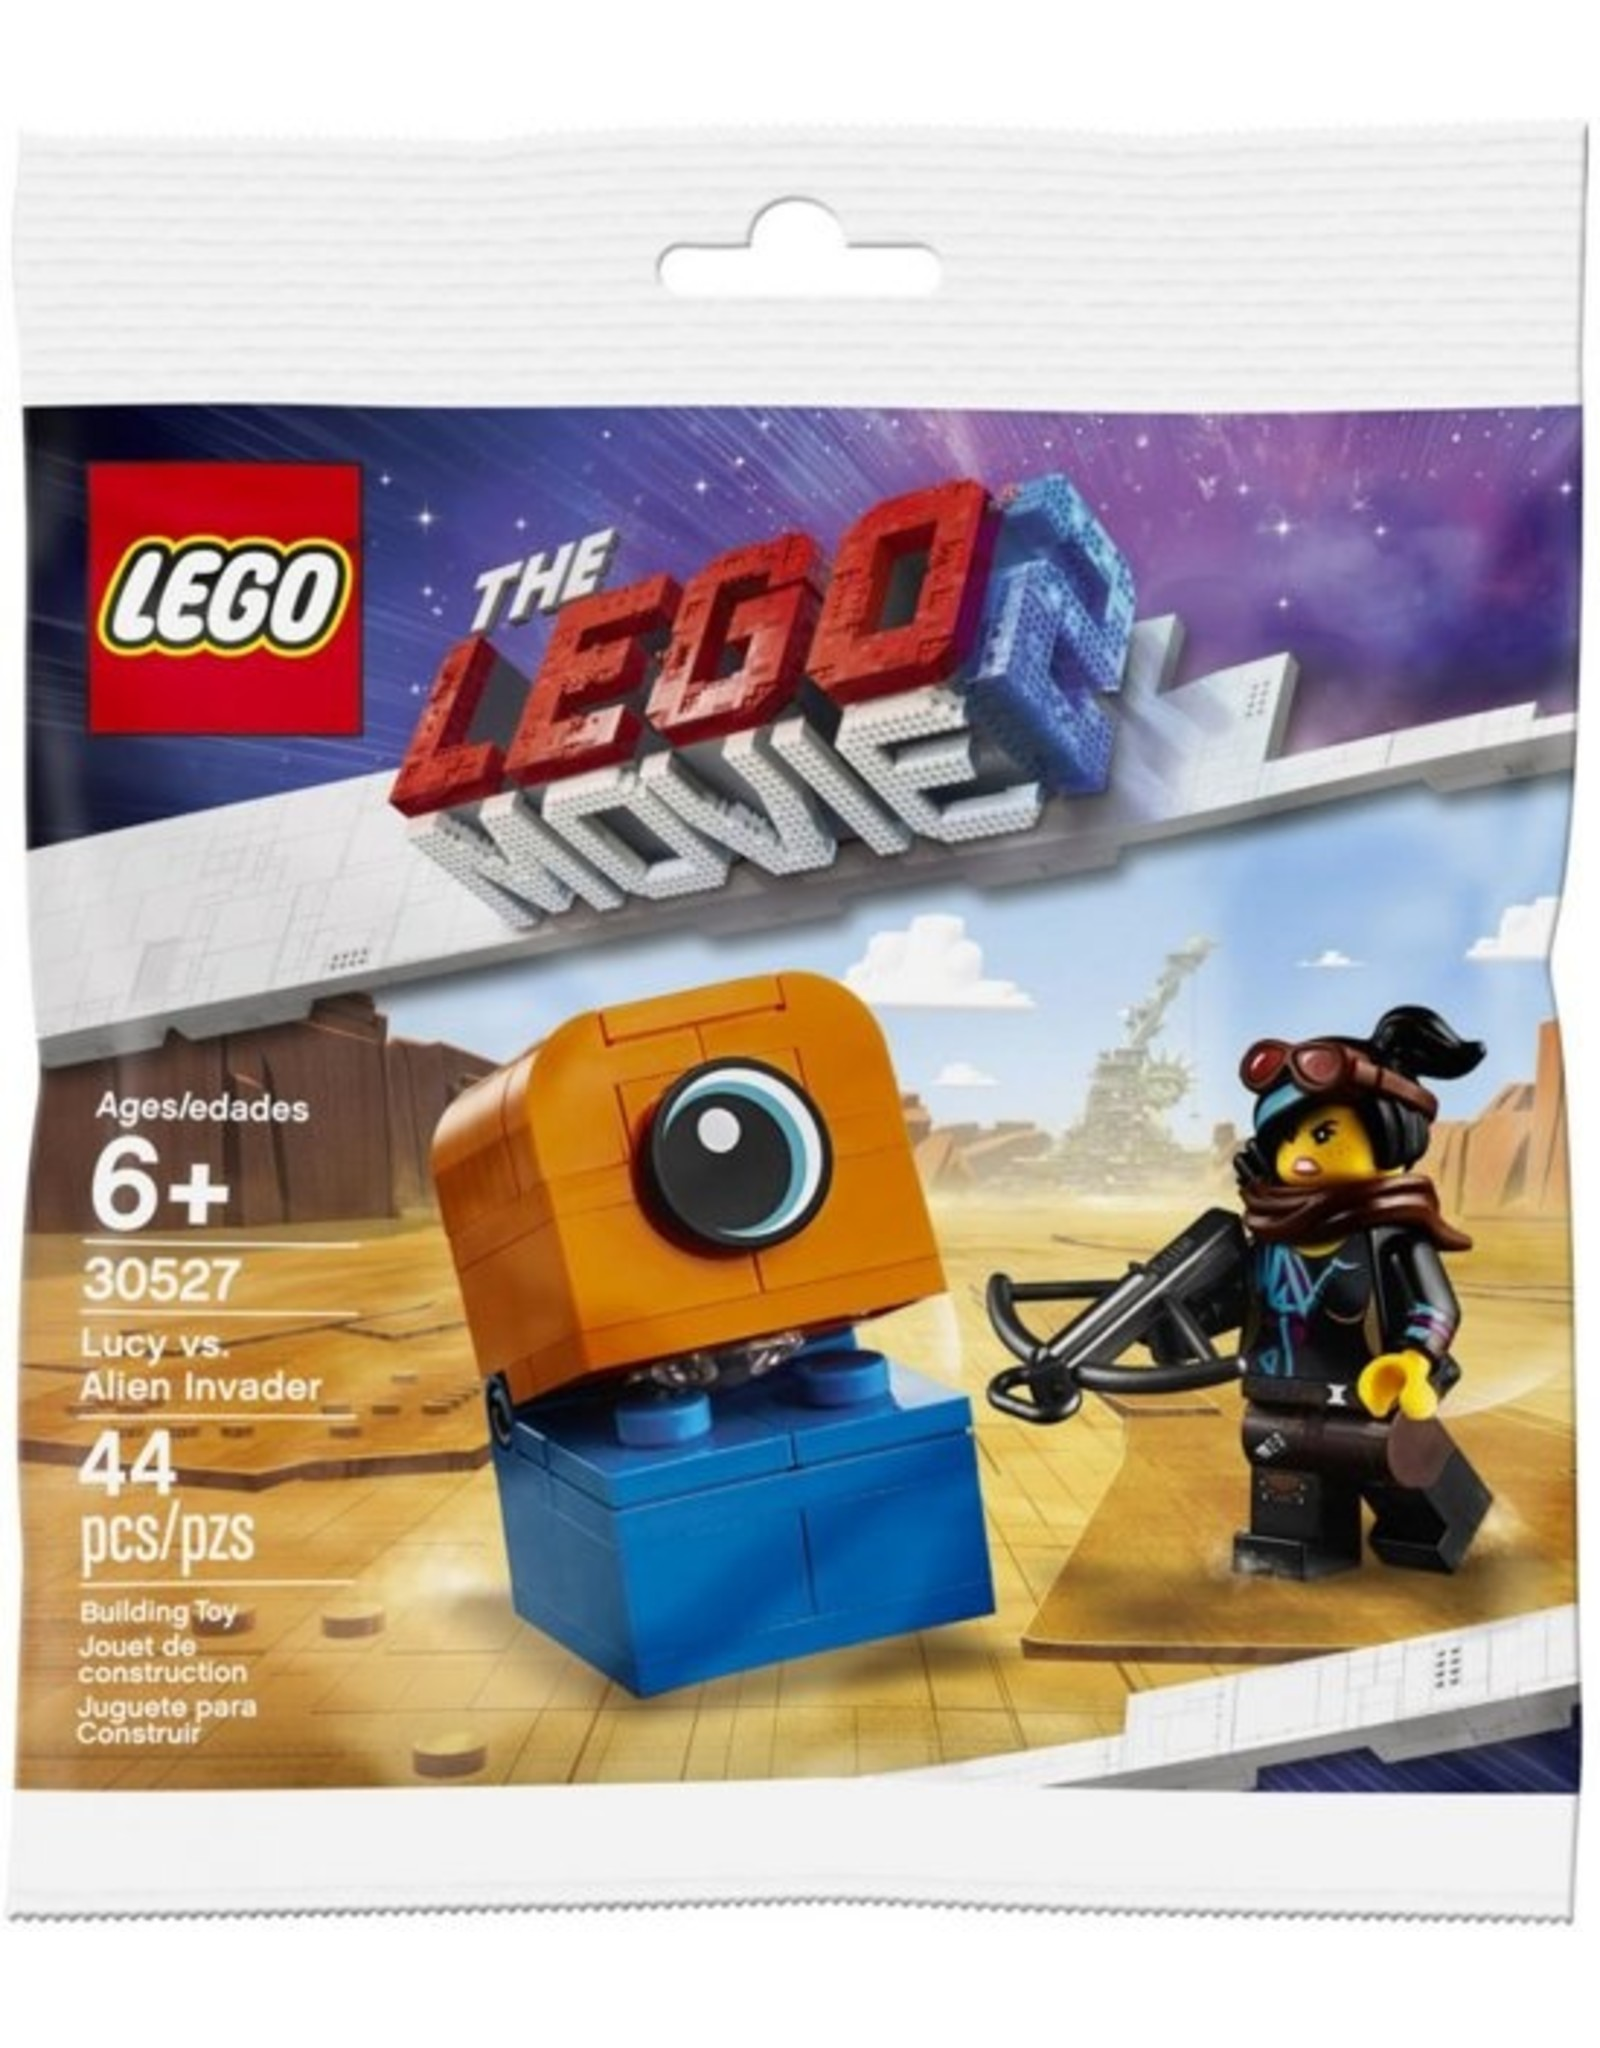 LEGO The LEGO Movie 2 30527 Lucy vs Alien Invader (Polybag)